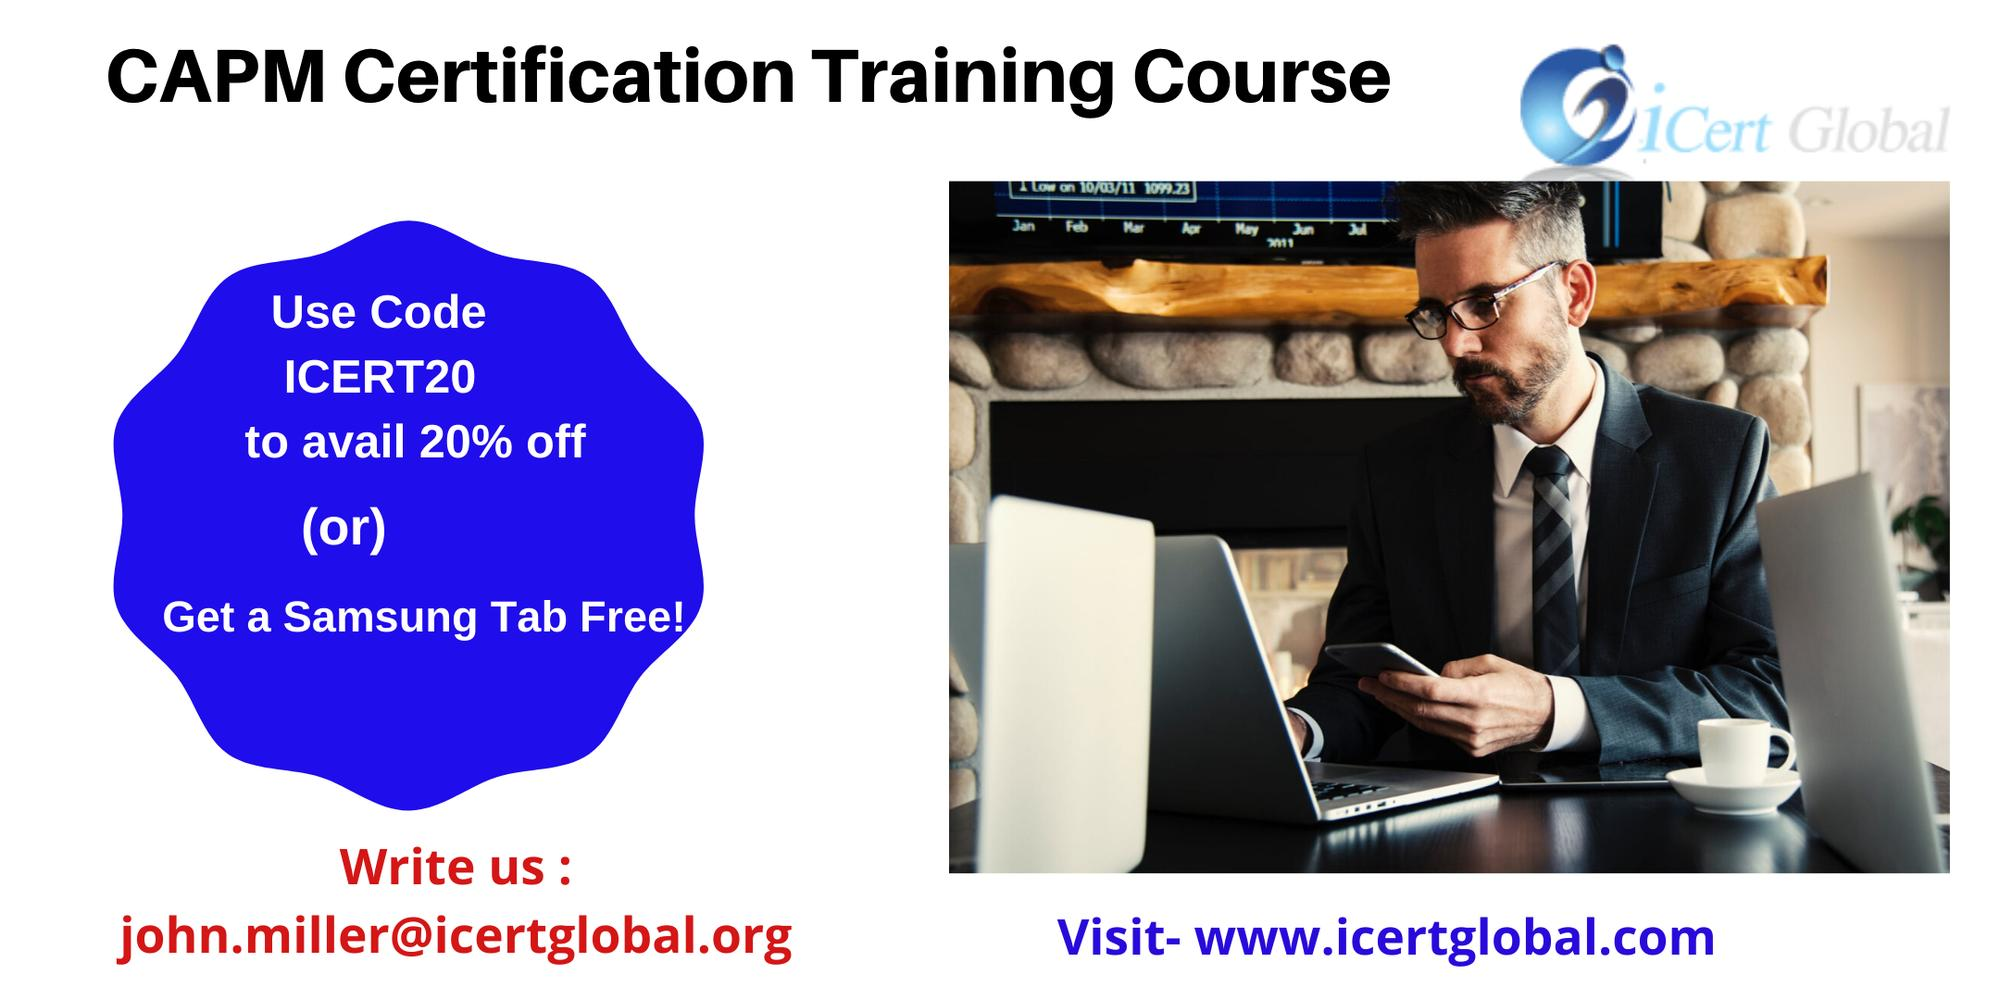 CAPM Certification Training Course in Tampa, FL